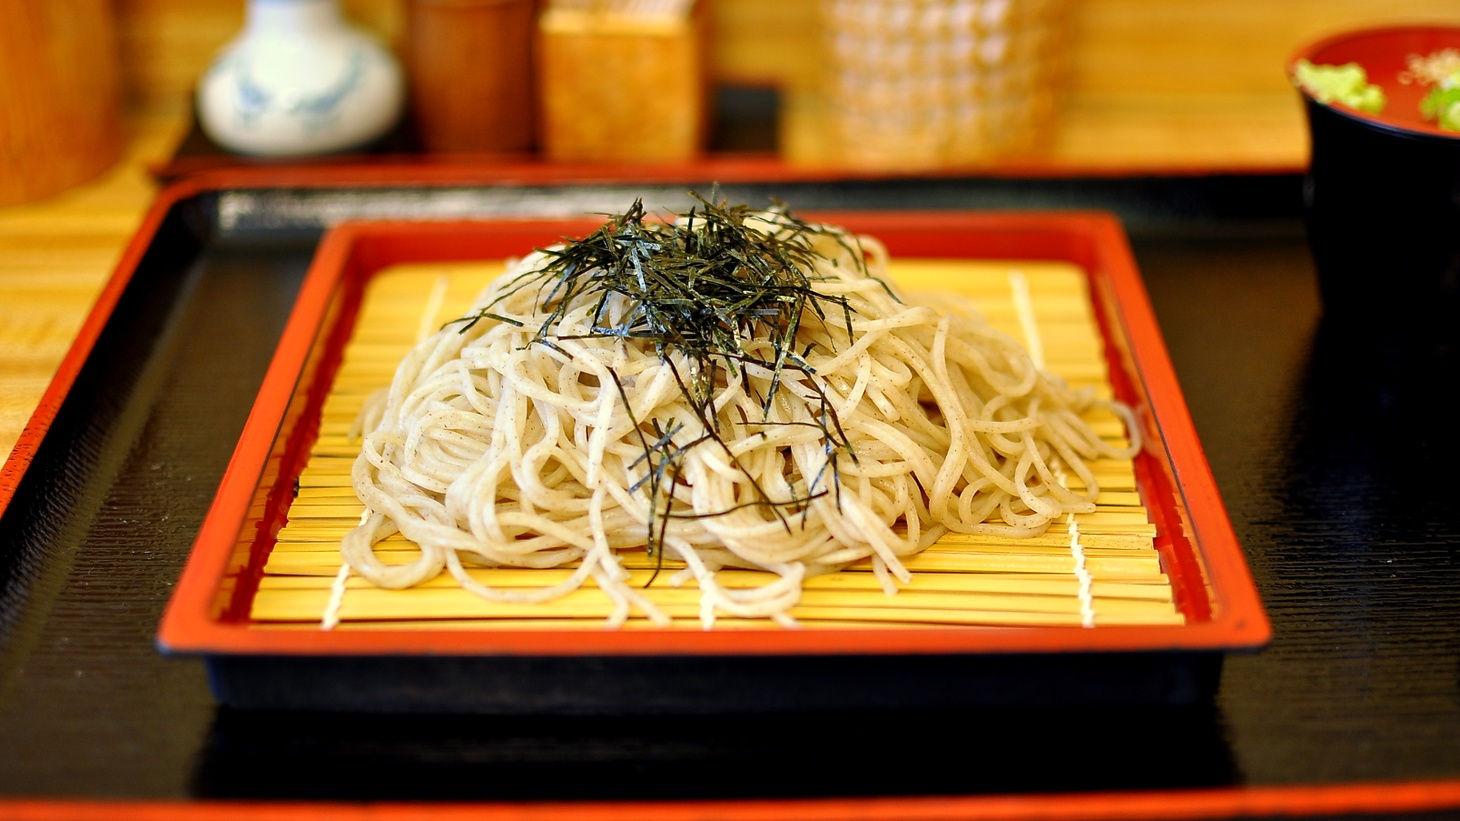 The soba noodles at Ichimi Ann Bamboo Garden are made from scratch and can be ordered cold.